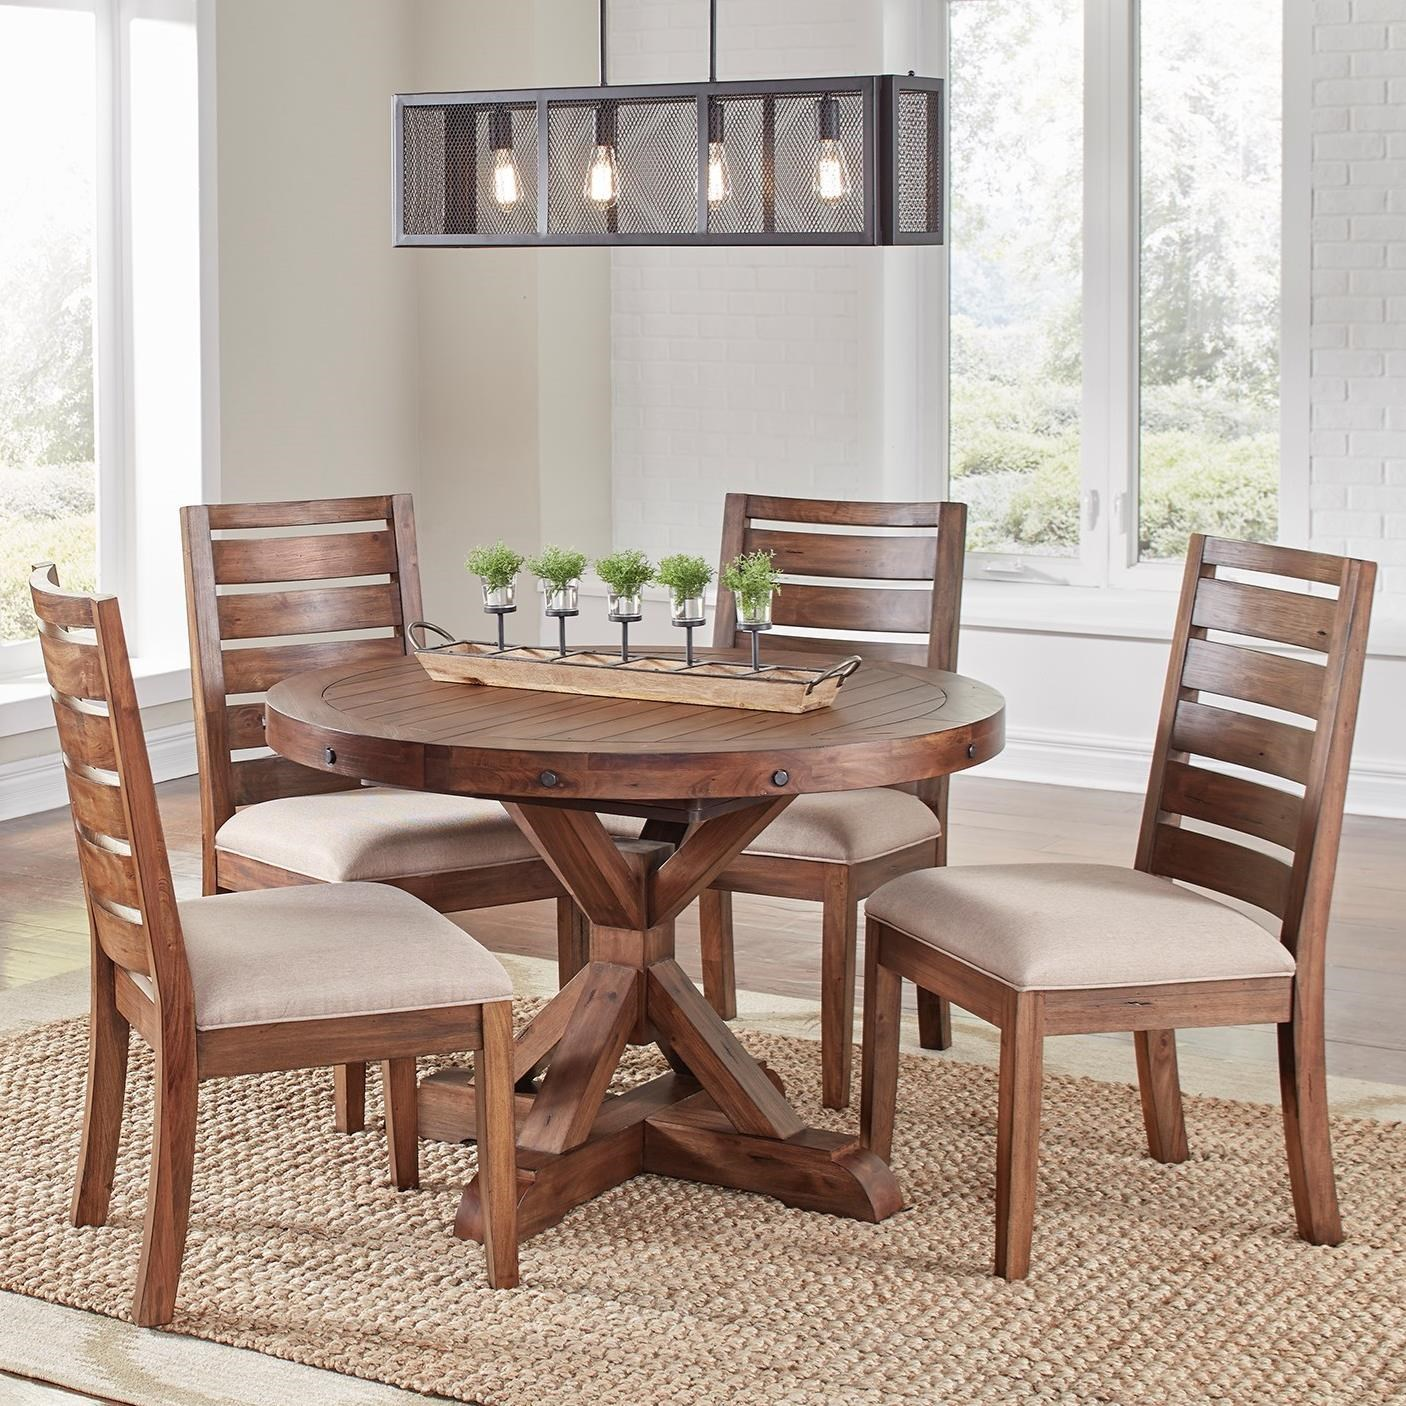 Anacortes 5 Piece Dining Set by AAmerica at Wayside Furniture